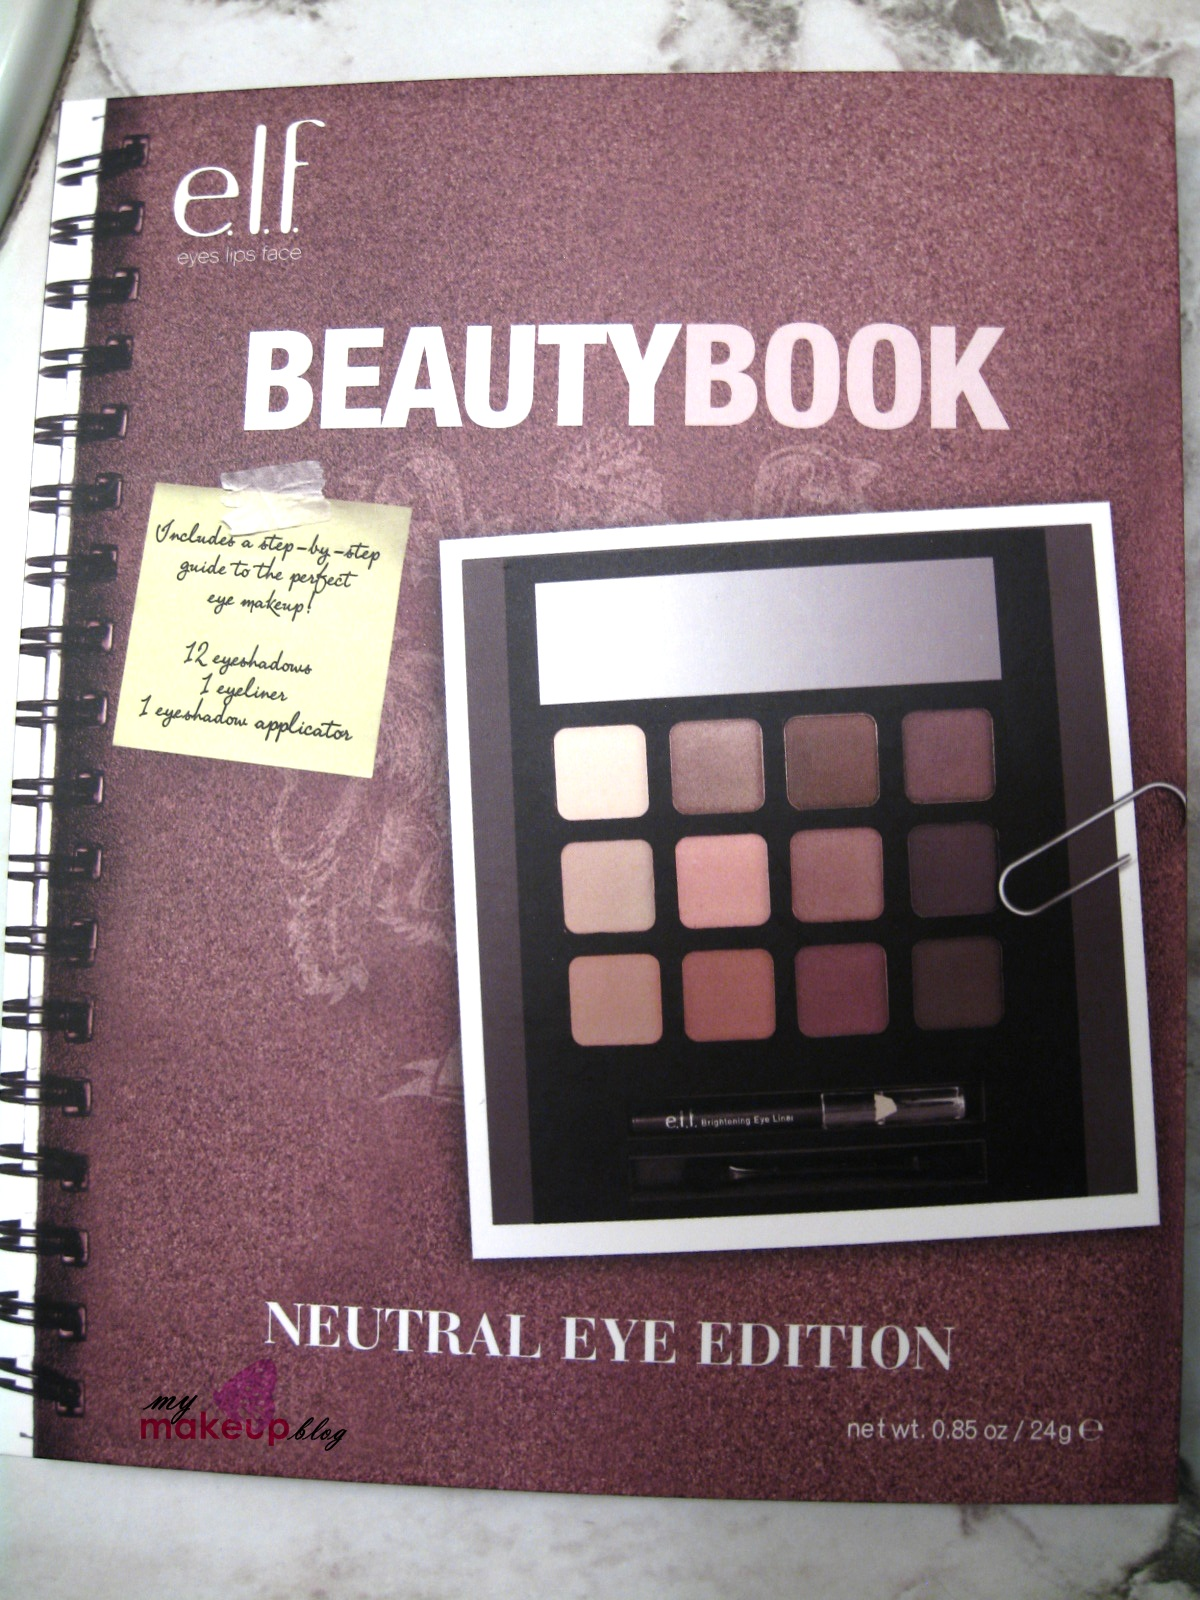 Elf beauty book neutral eye edition